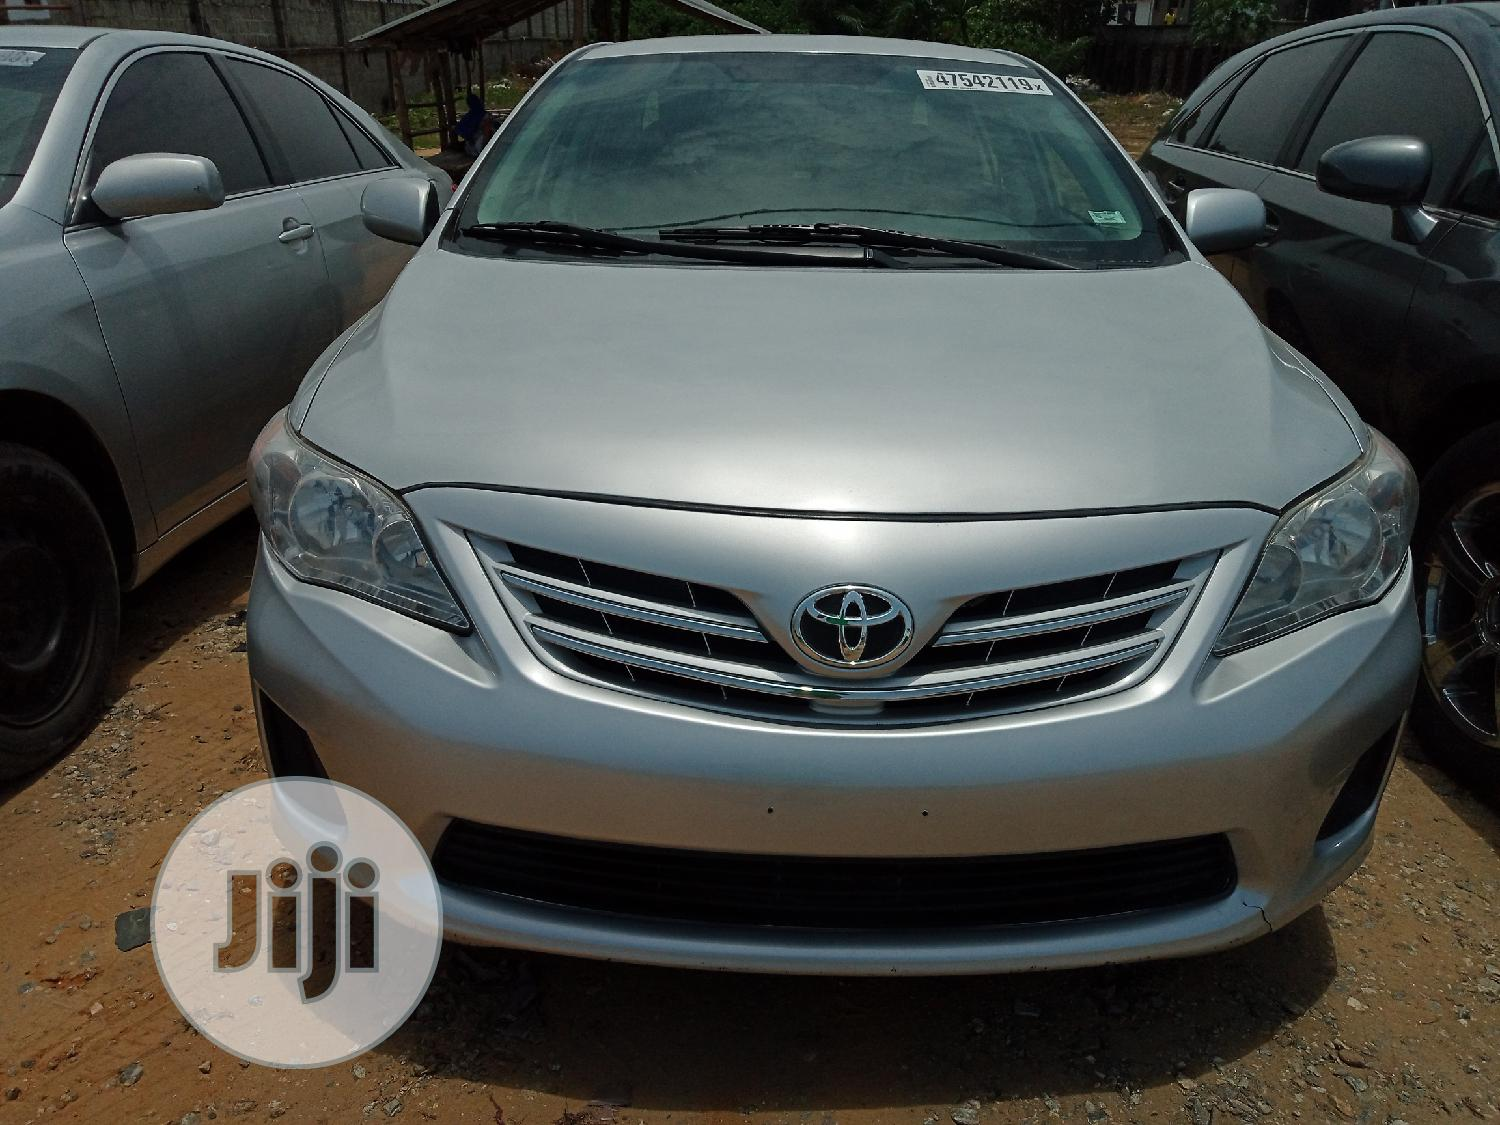 Archive Toyota Corolla 2013 Silver In Badagry Cars Godzyomo Omo Jiji Ng For Sale In Badagry Buy Cars From Godzyomo Omo On Jiji Ng